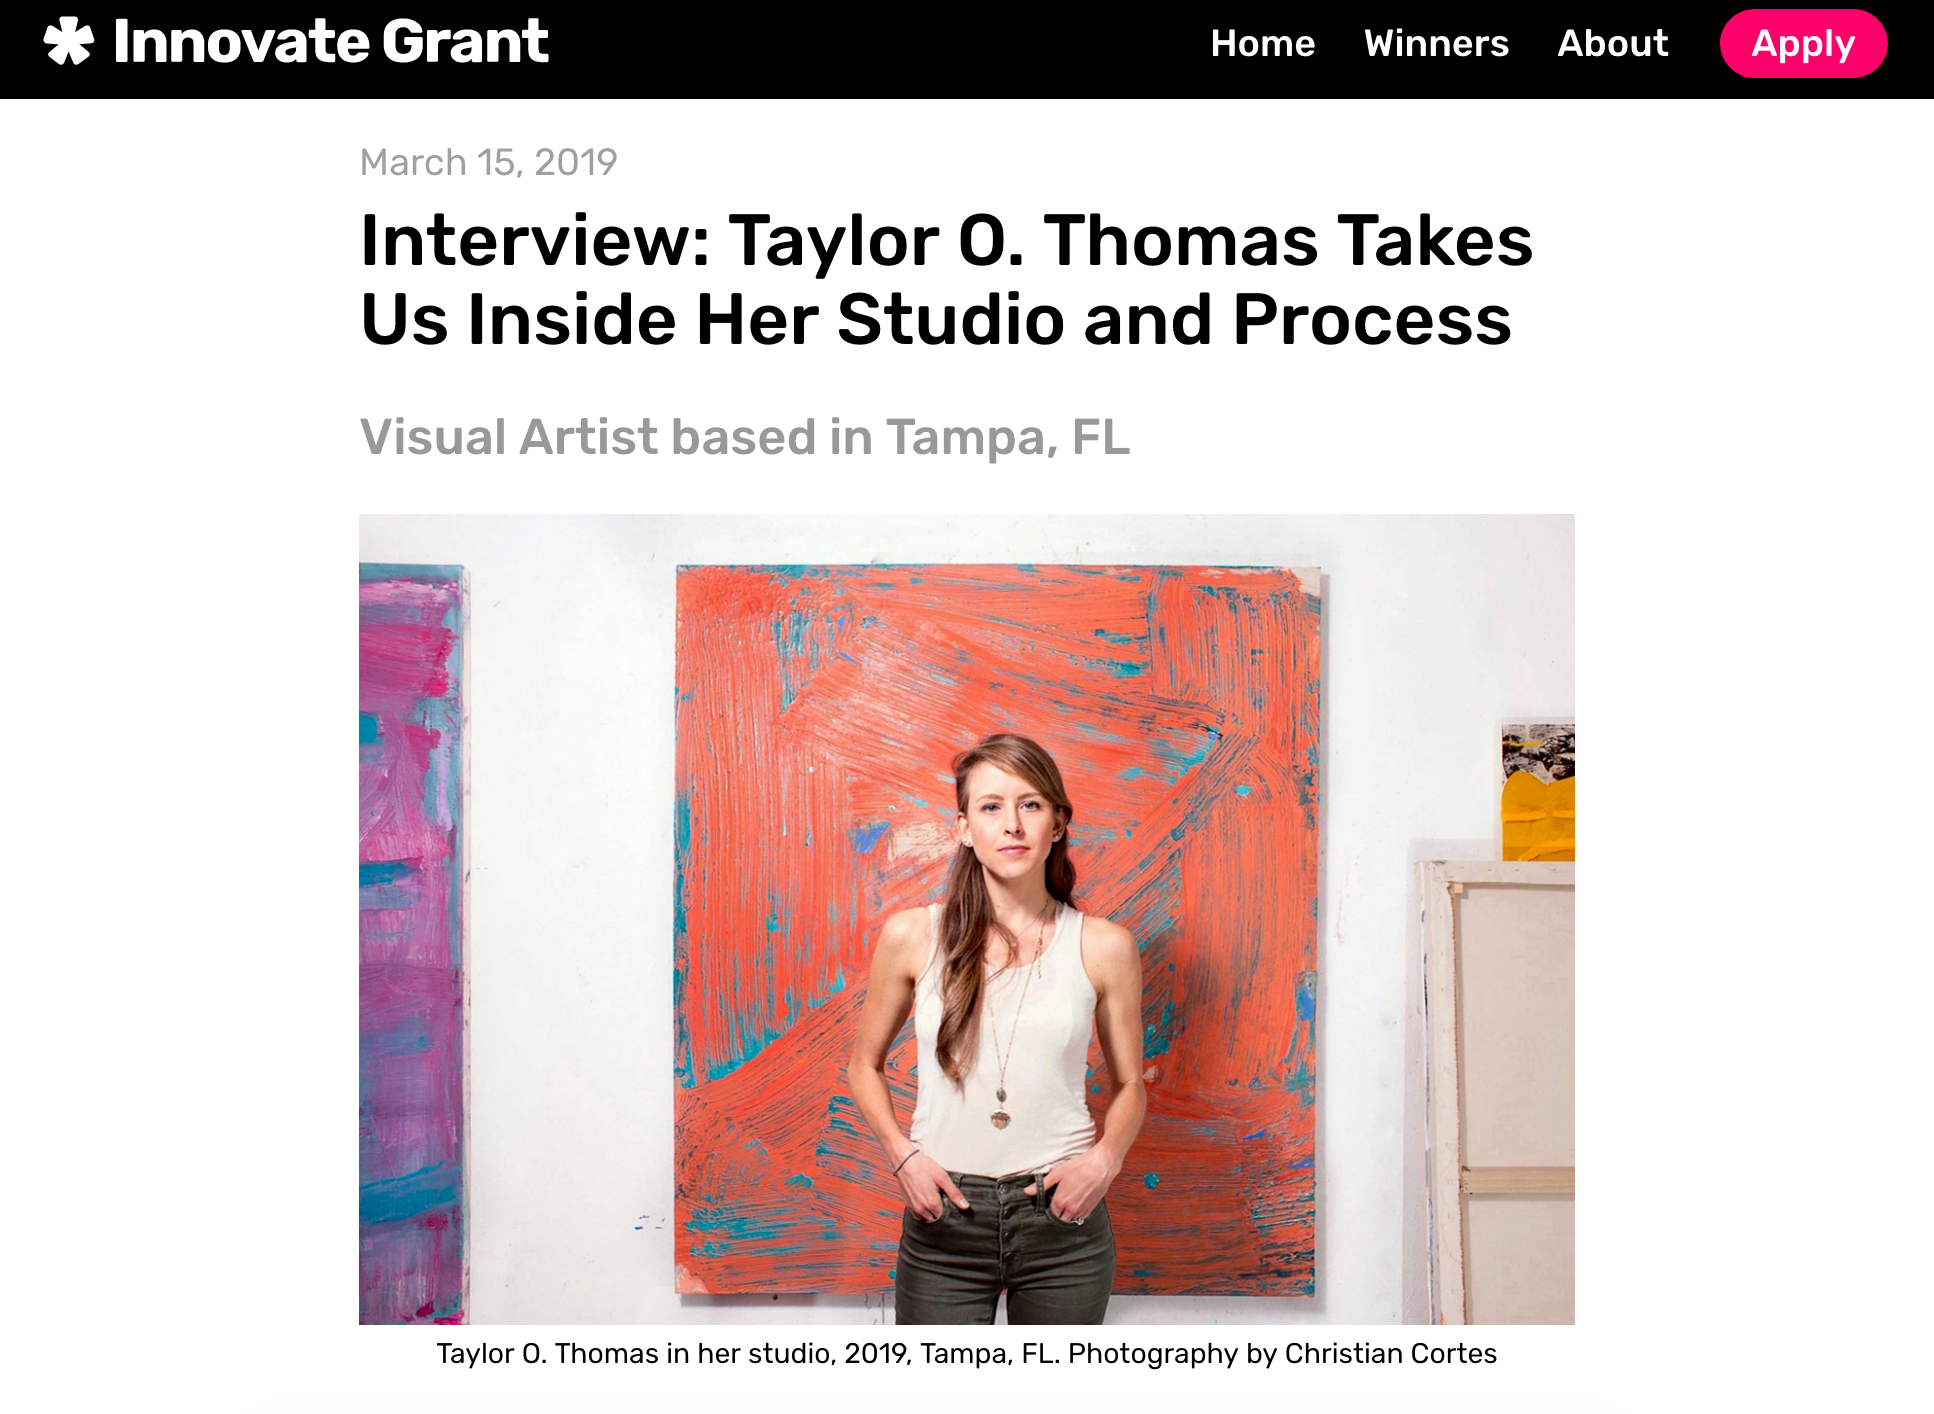 Interview with Innovate Artist Grants - March 2019Innovate Artist Grants recently launched their online platform, awarding Thomas as one of two inaugural award recipients. Click here to read their interview on the artist's recent work and studio process.